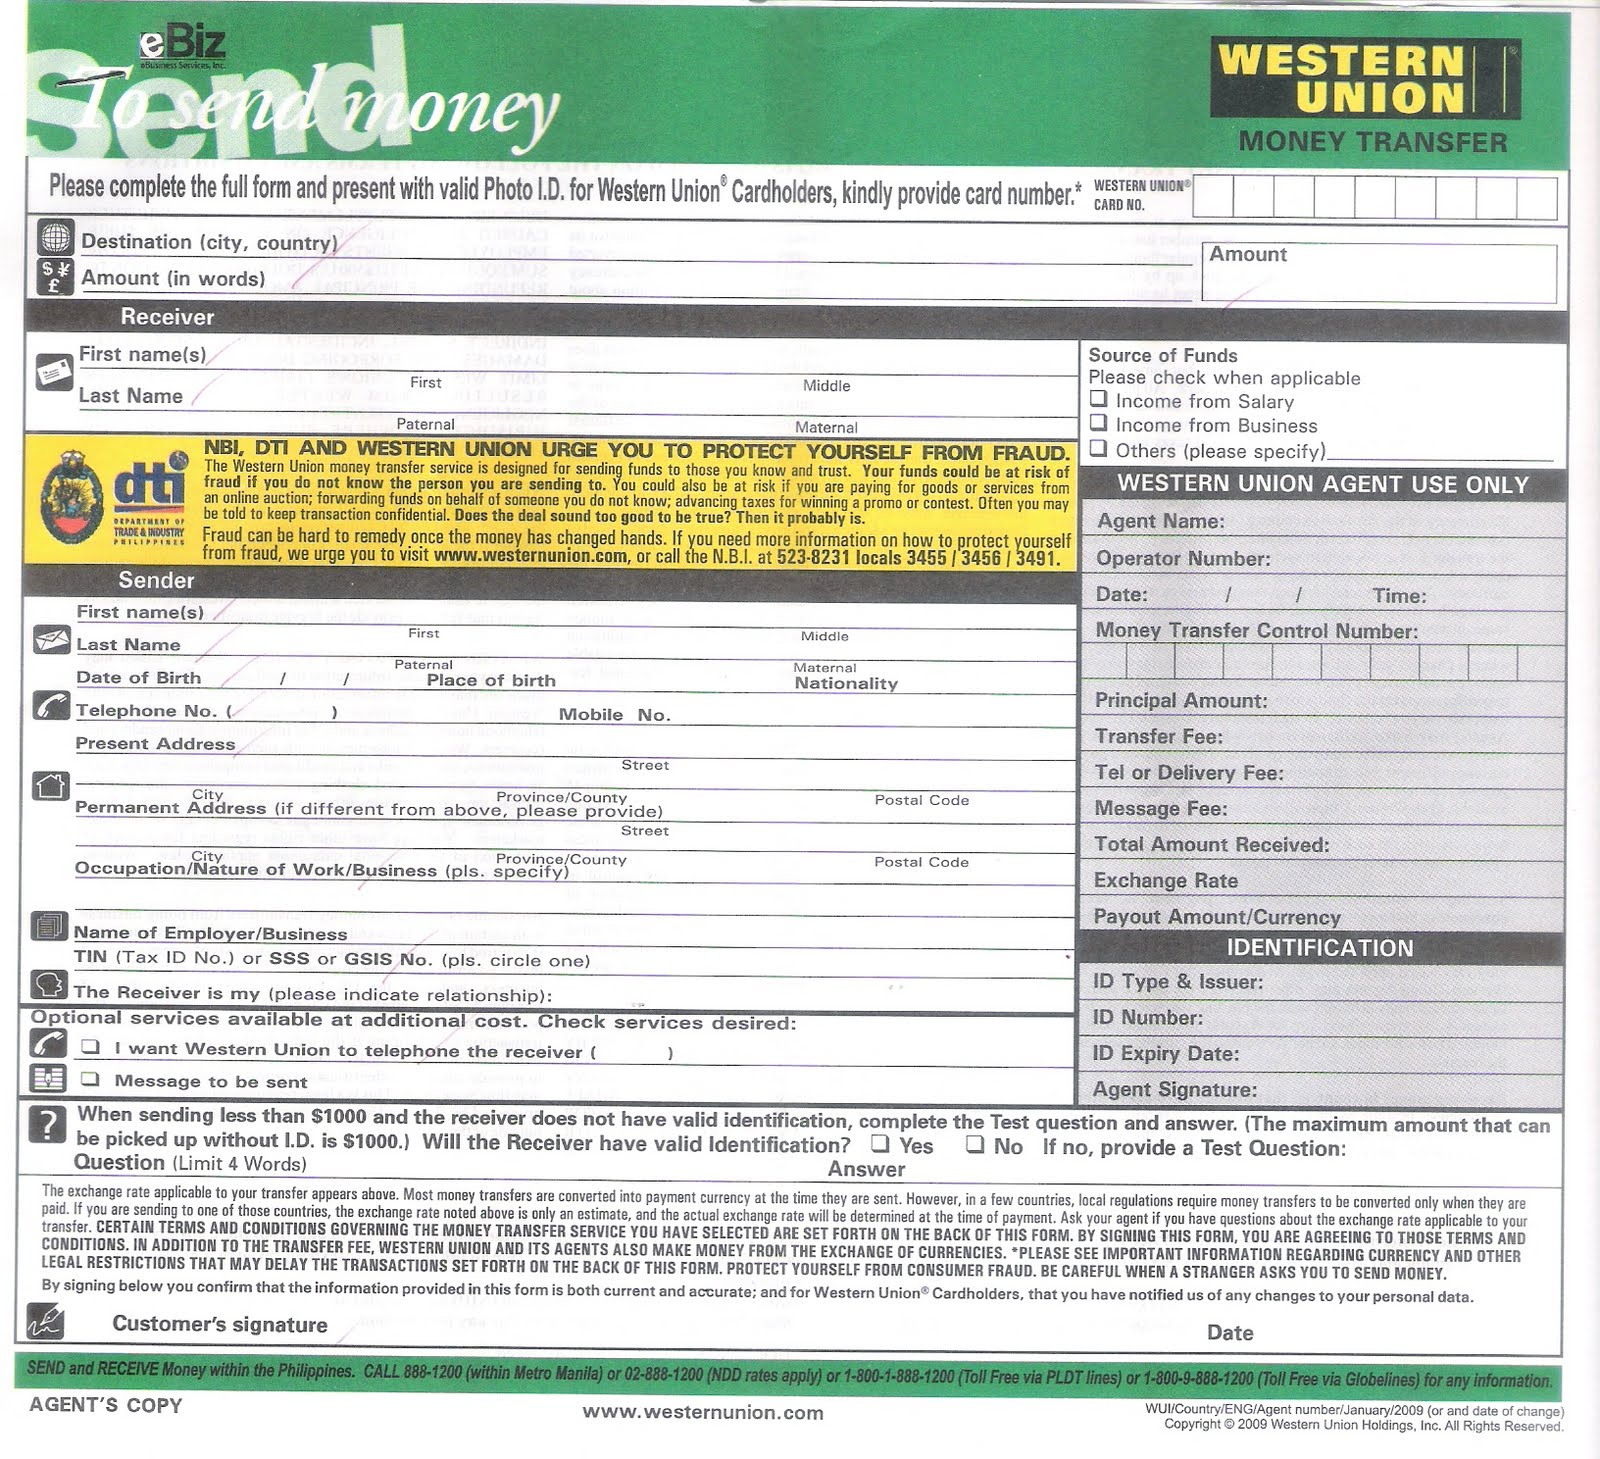 Searchitfast - Image - how to send western union